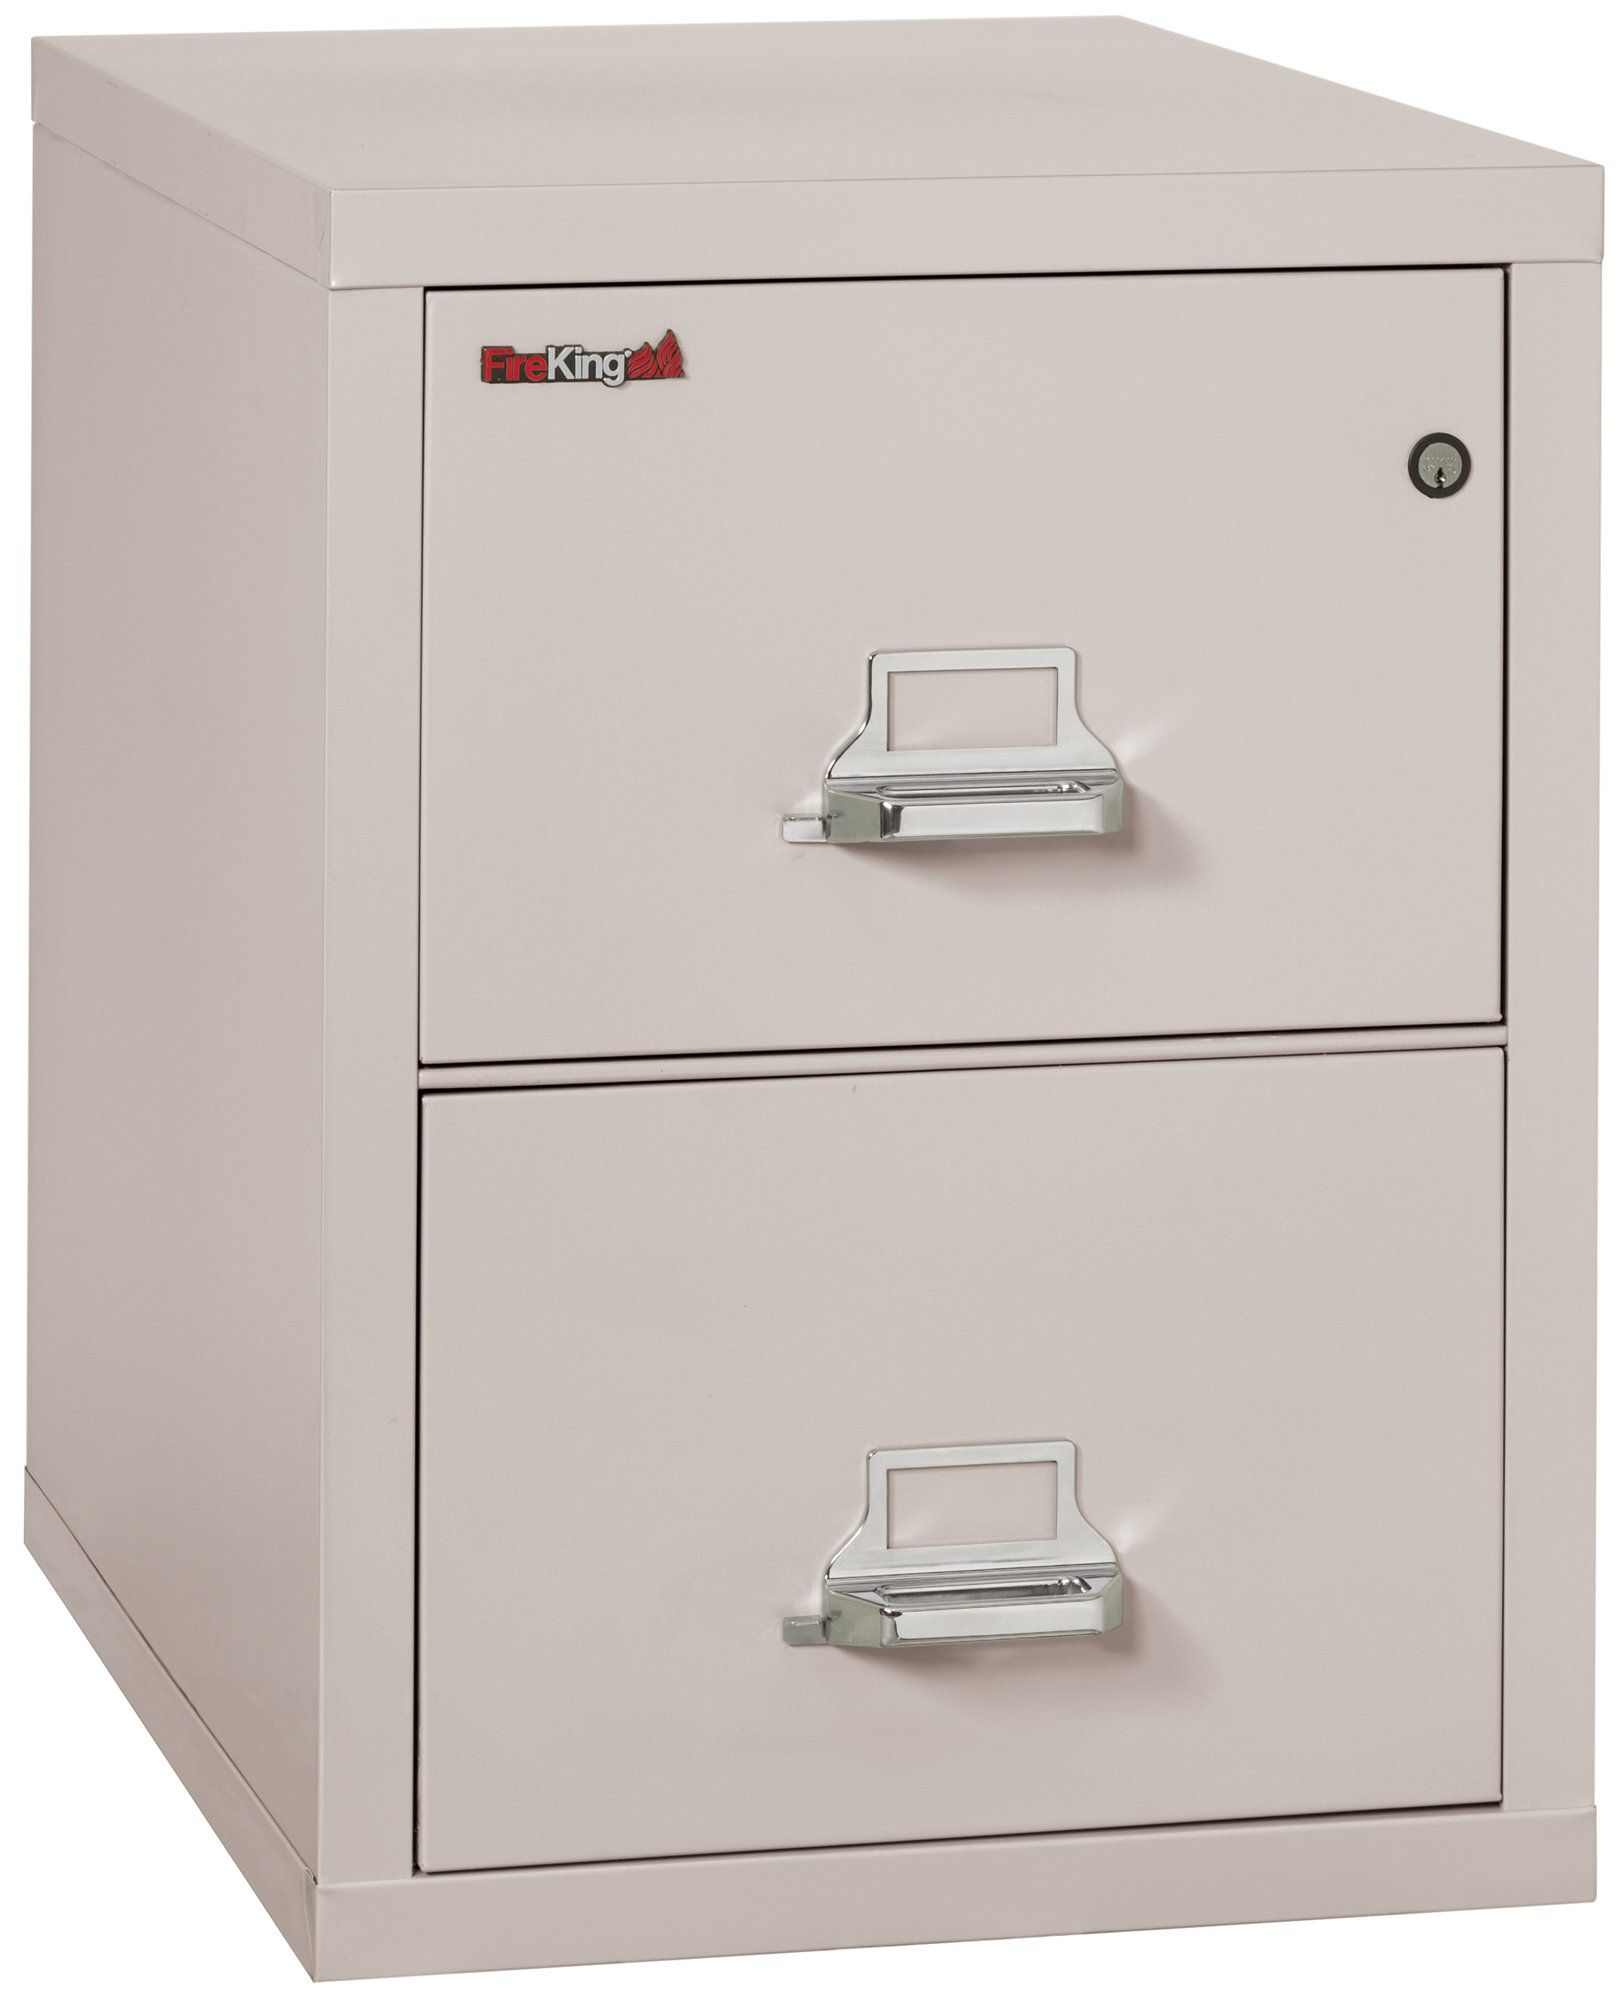 Legal 2 Drawer Vertical Filing Cabinet Filing Cabinet Global Office Furniture Fireproof Insulation